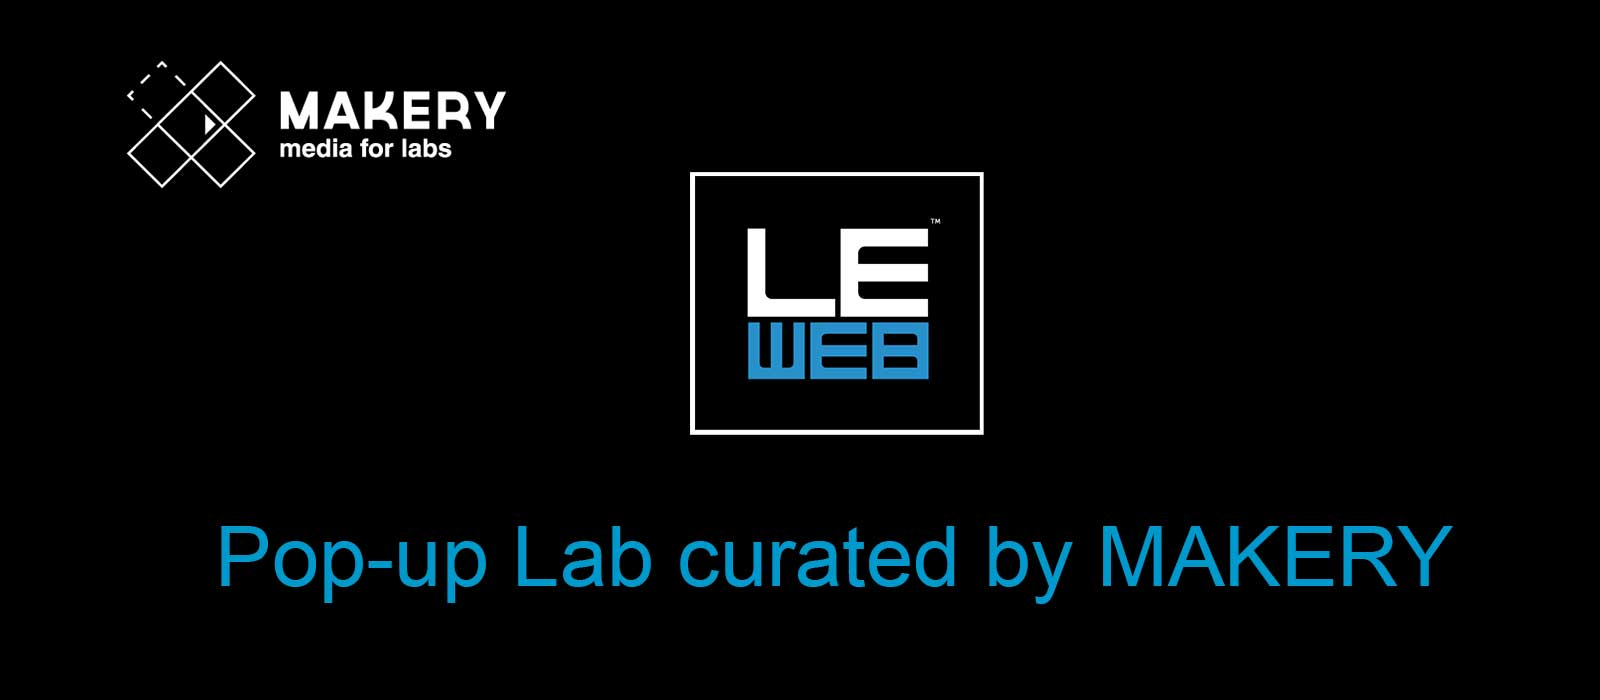 Le Web confie son premier Pop-up Lab à Makery